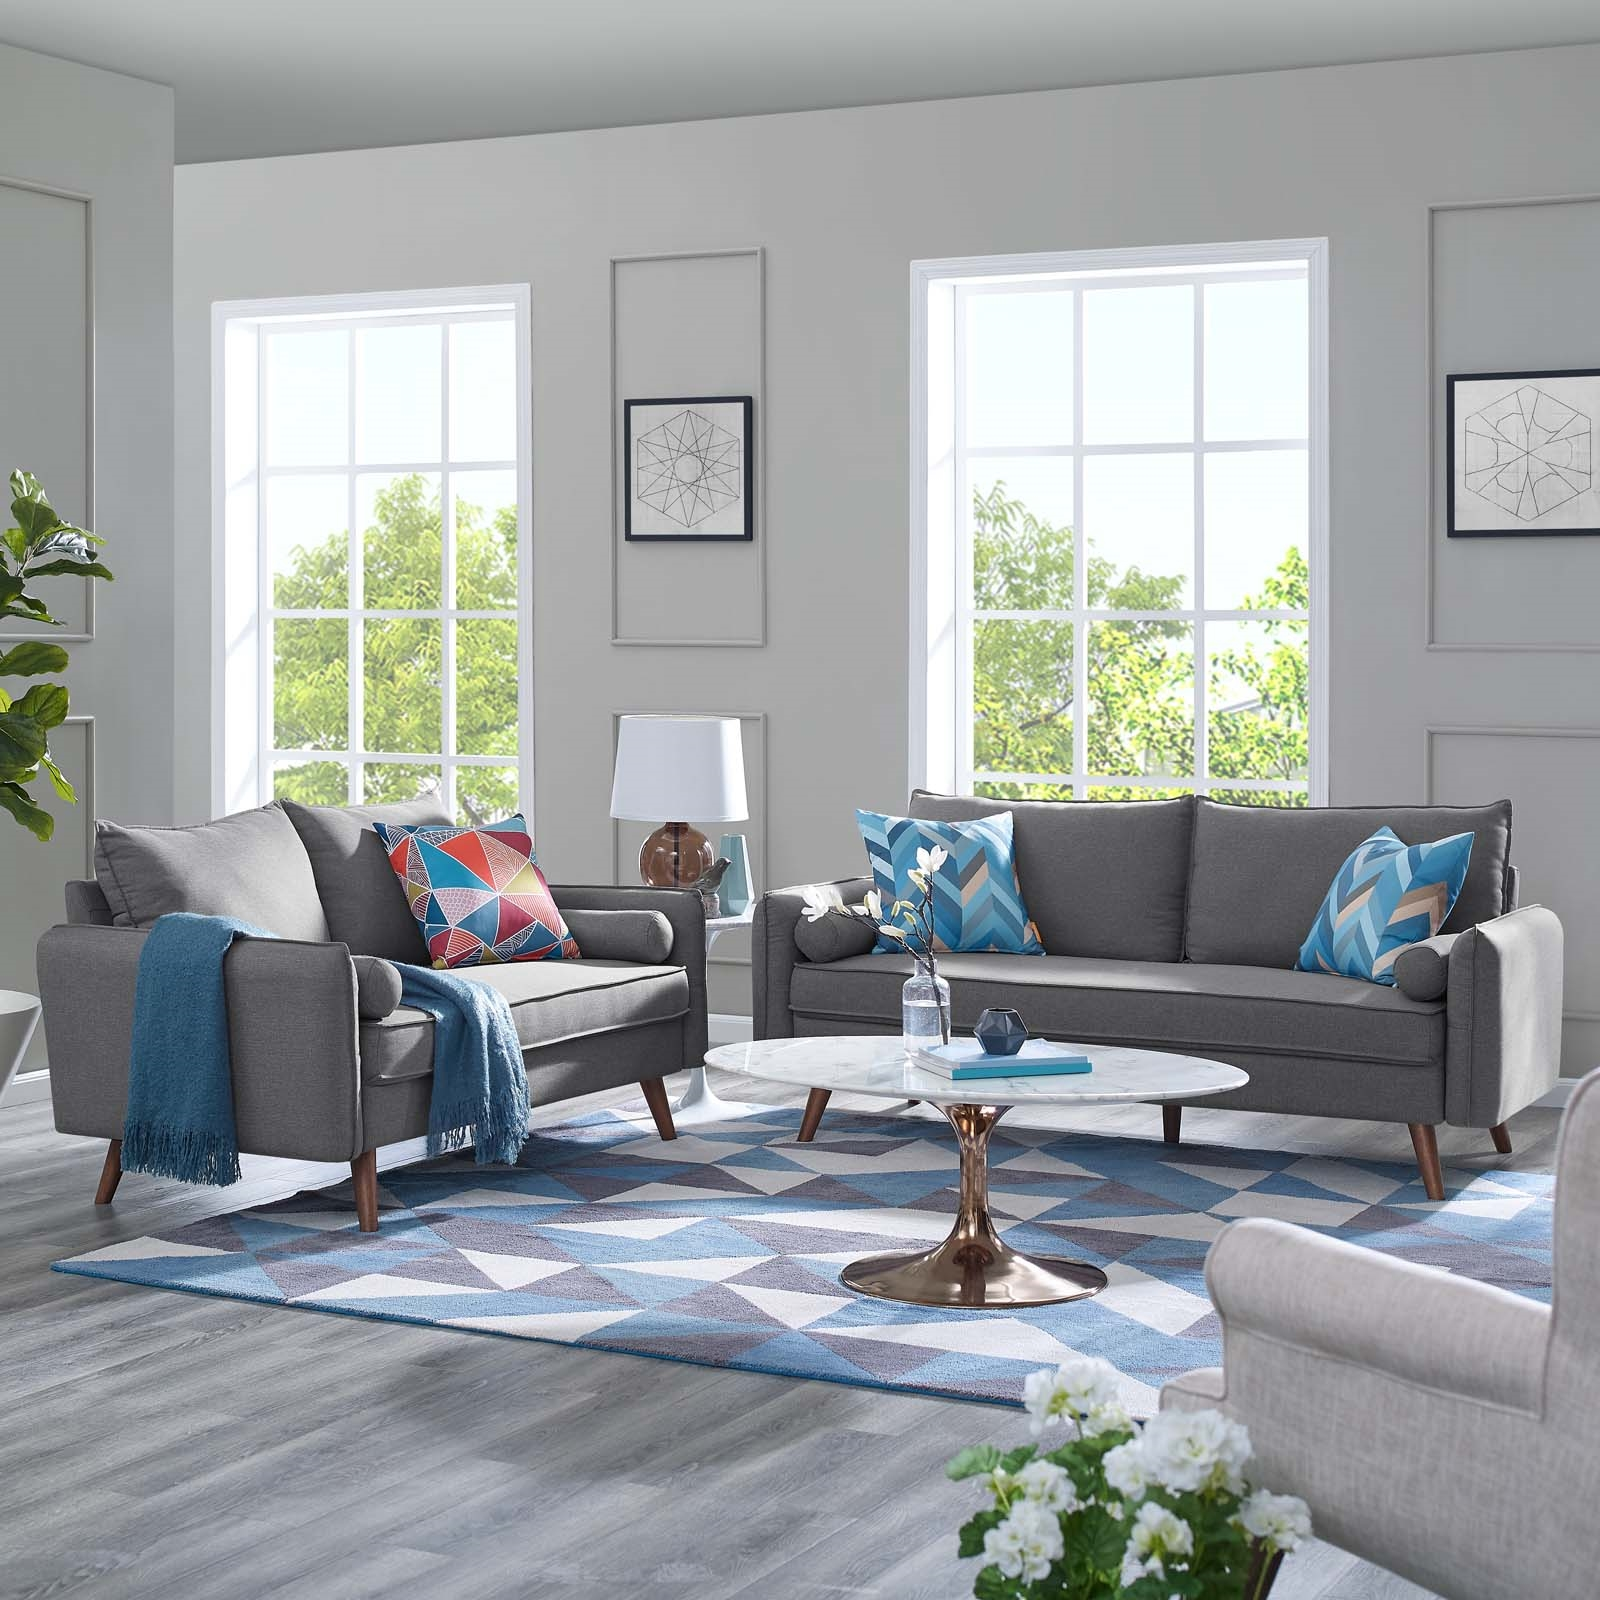 Revive Upholstered Fabric Sofa and Loveseat Set in Light gray